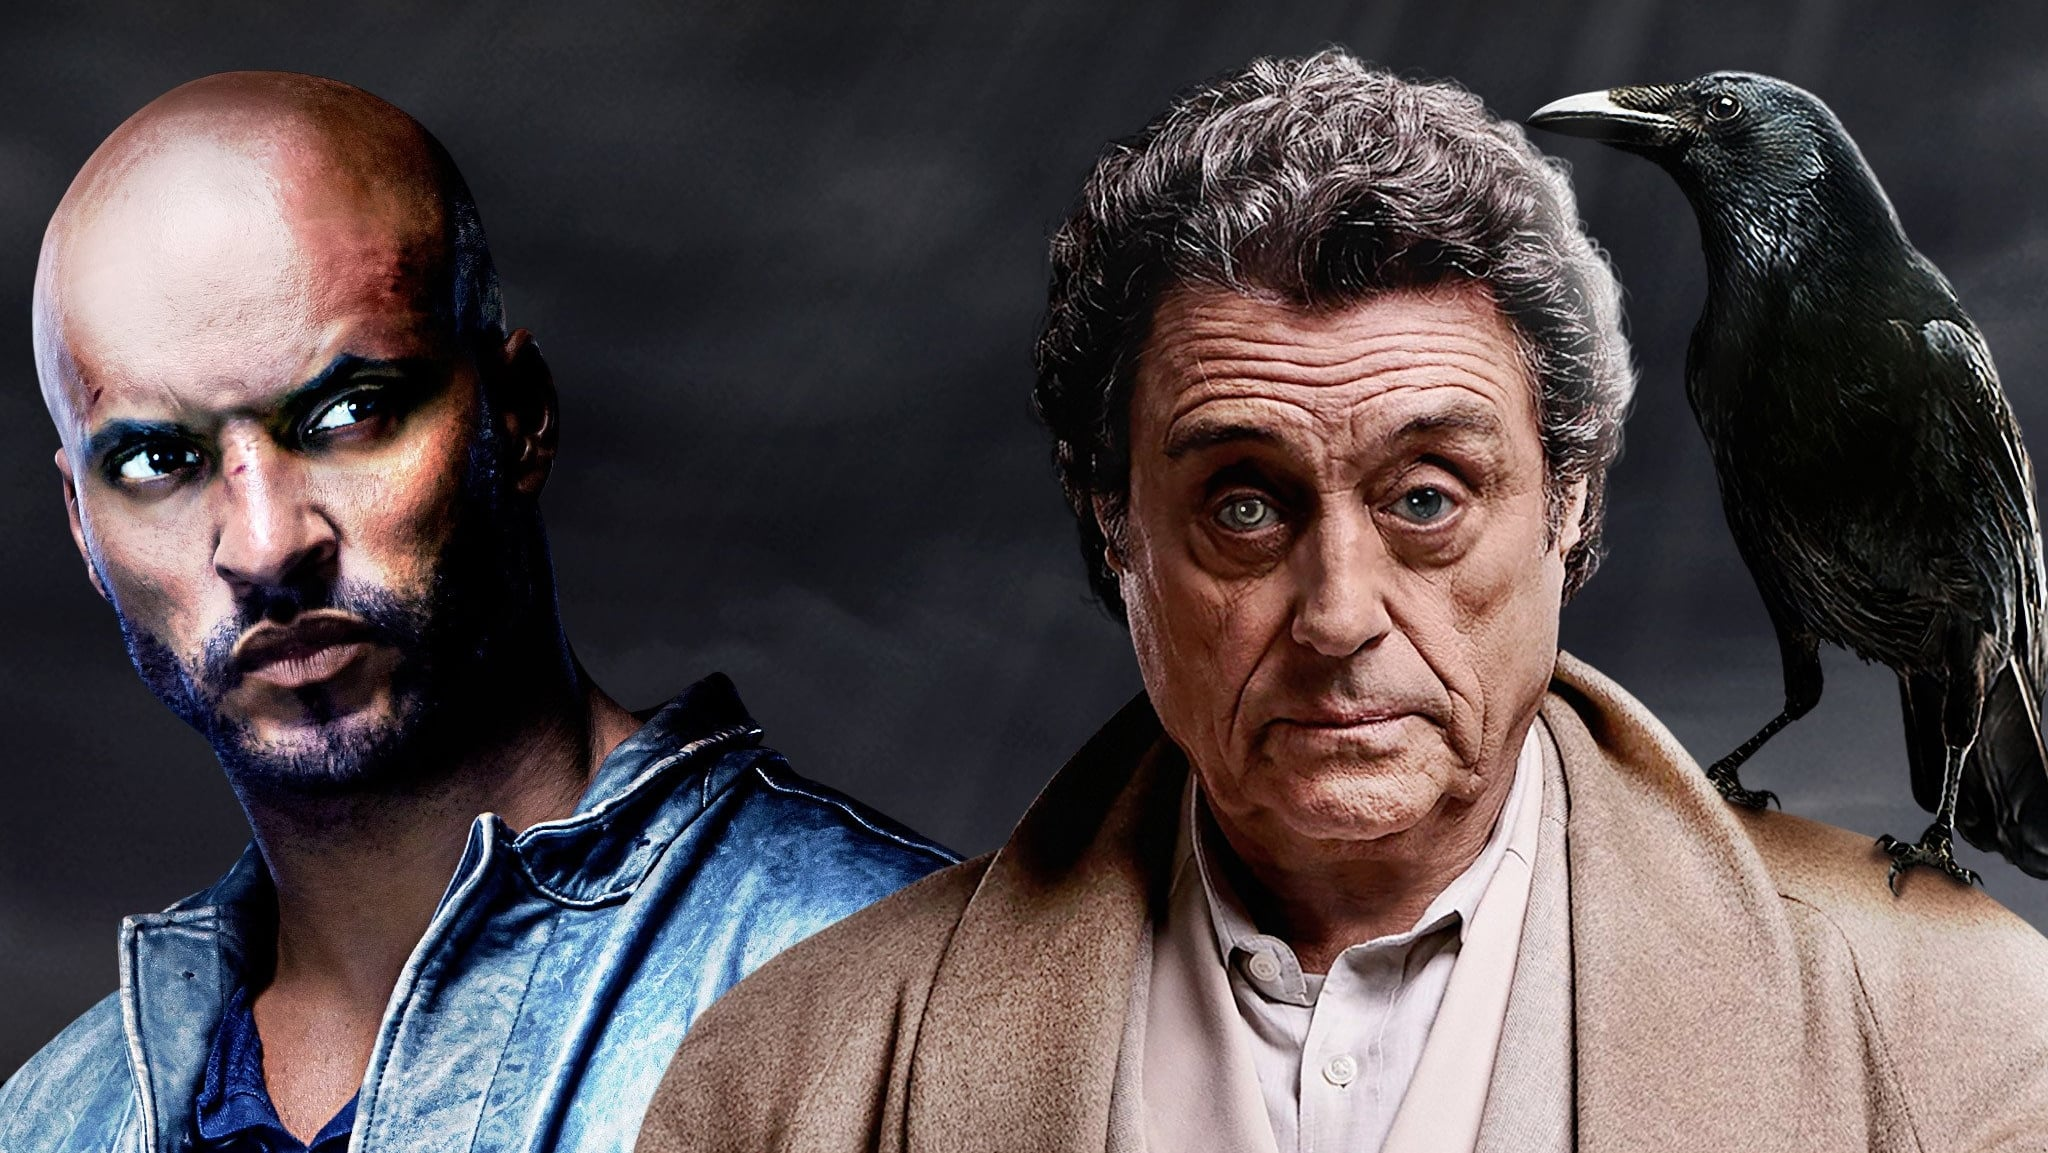 American Gods Wallpaper: American Gods (2017) Movie Media, Pictures, Videos Etc